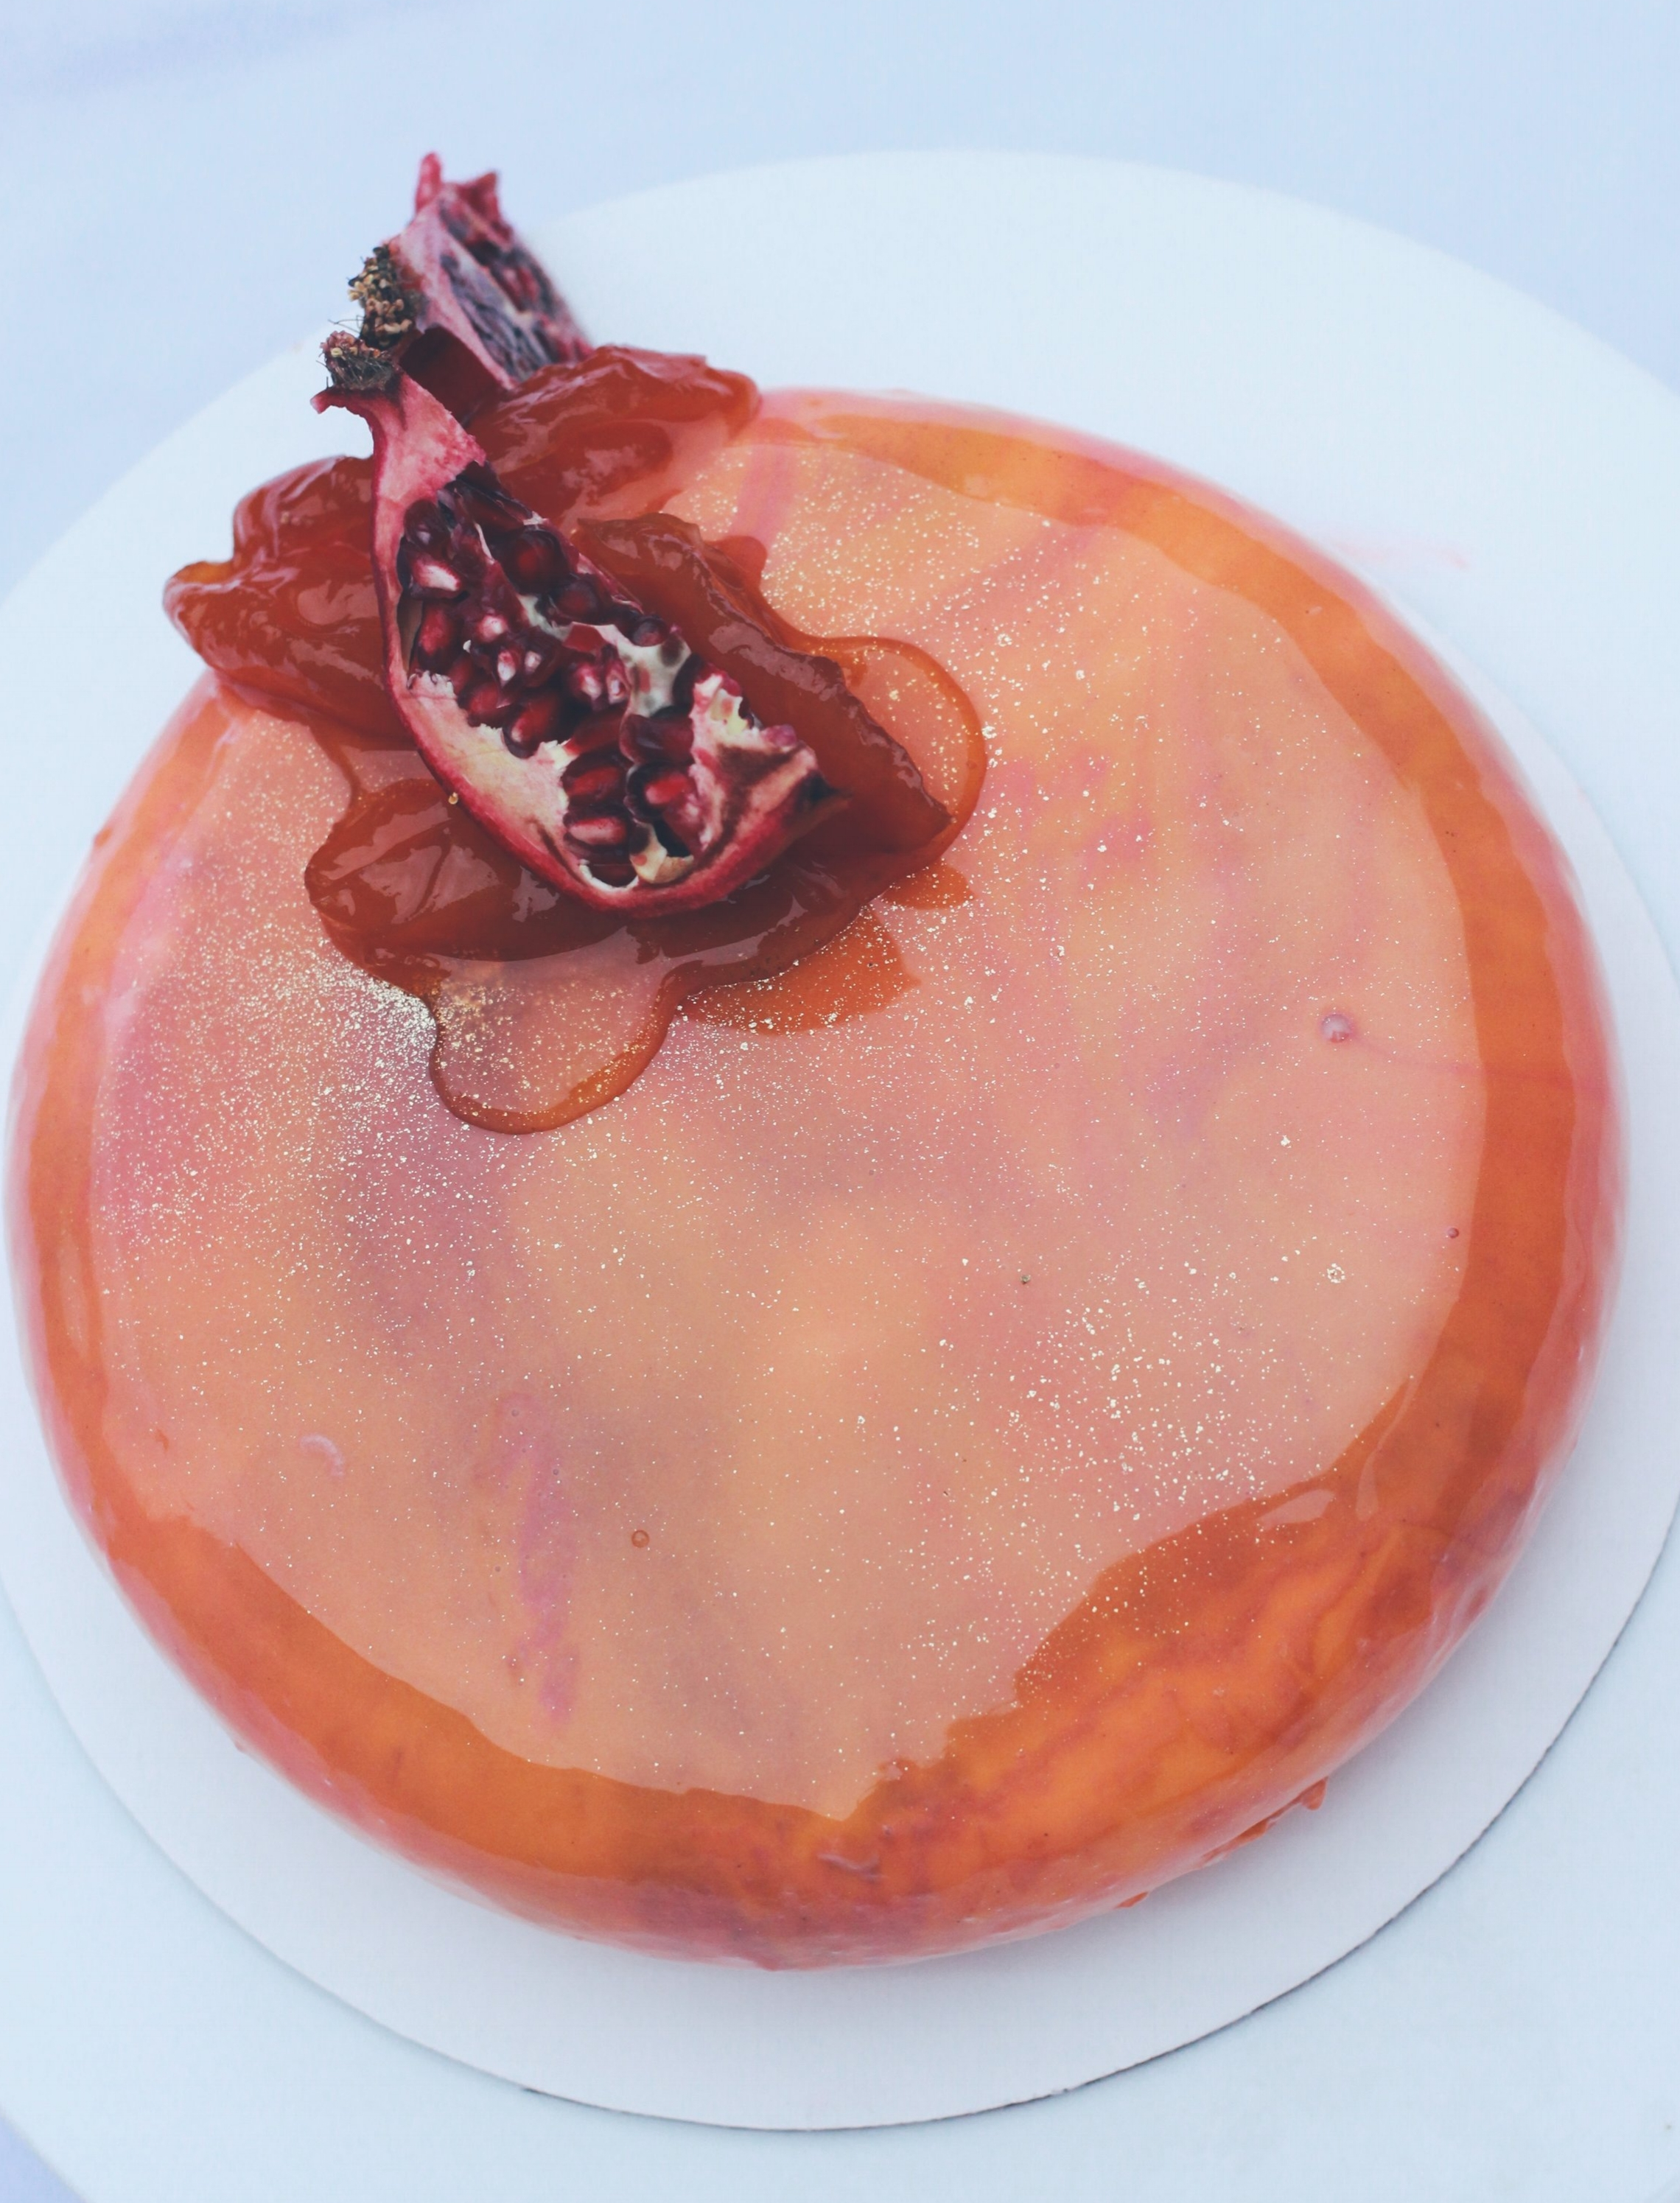 Pomegranate and Peach Entremet with a hint of Roses